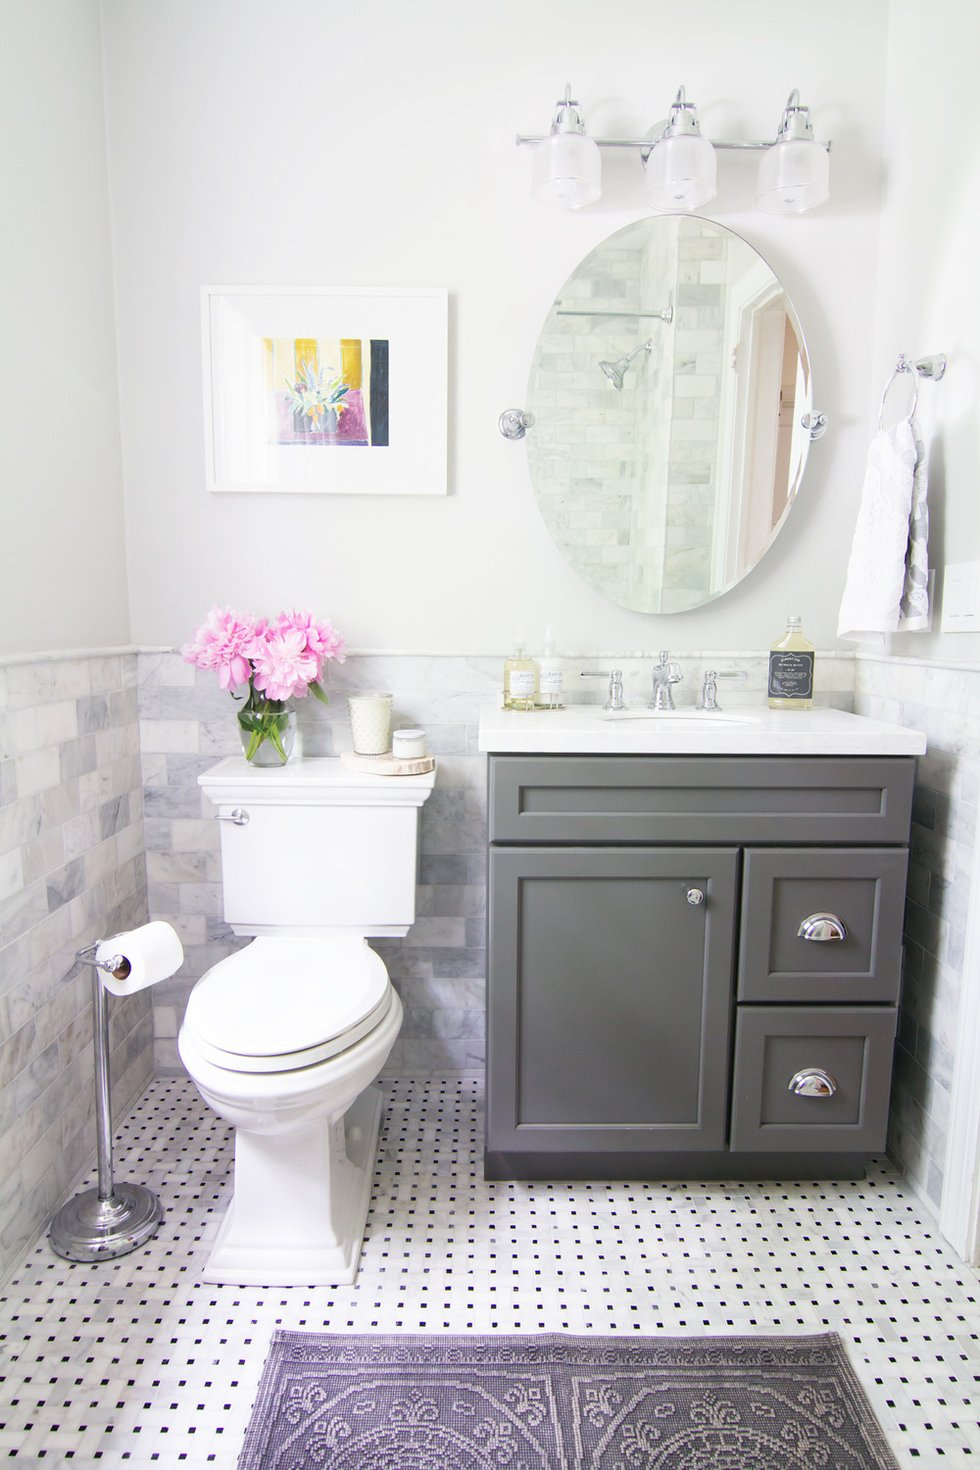 Modern and simple small bathroom ideas you can try at home for A small bathroom design